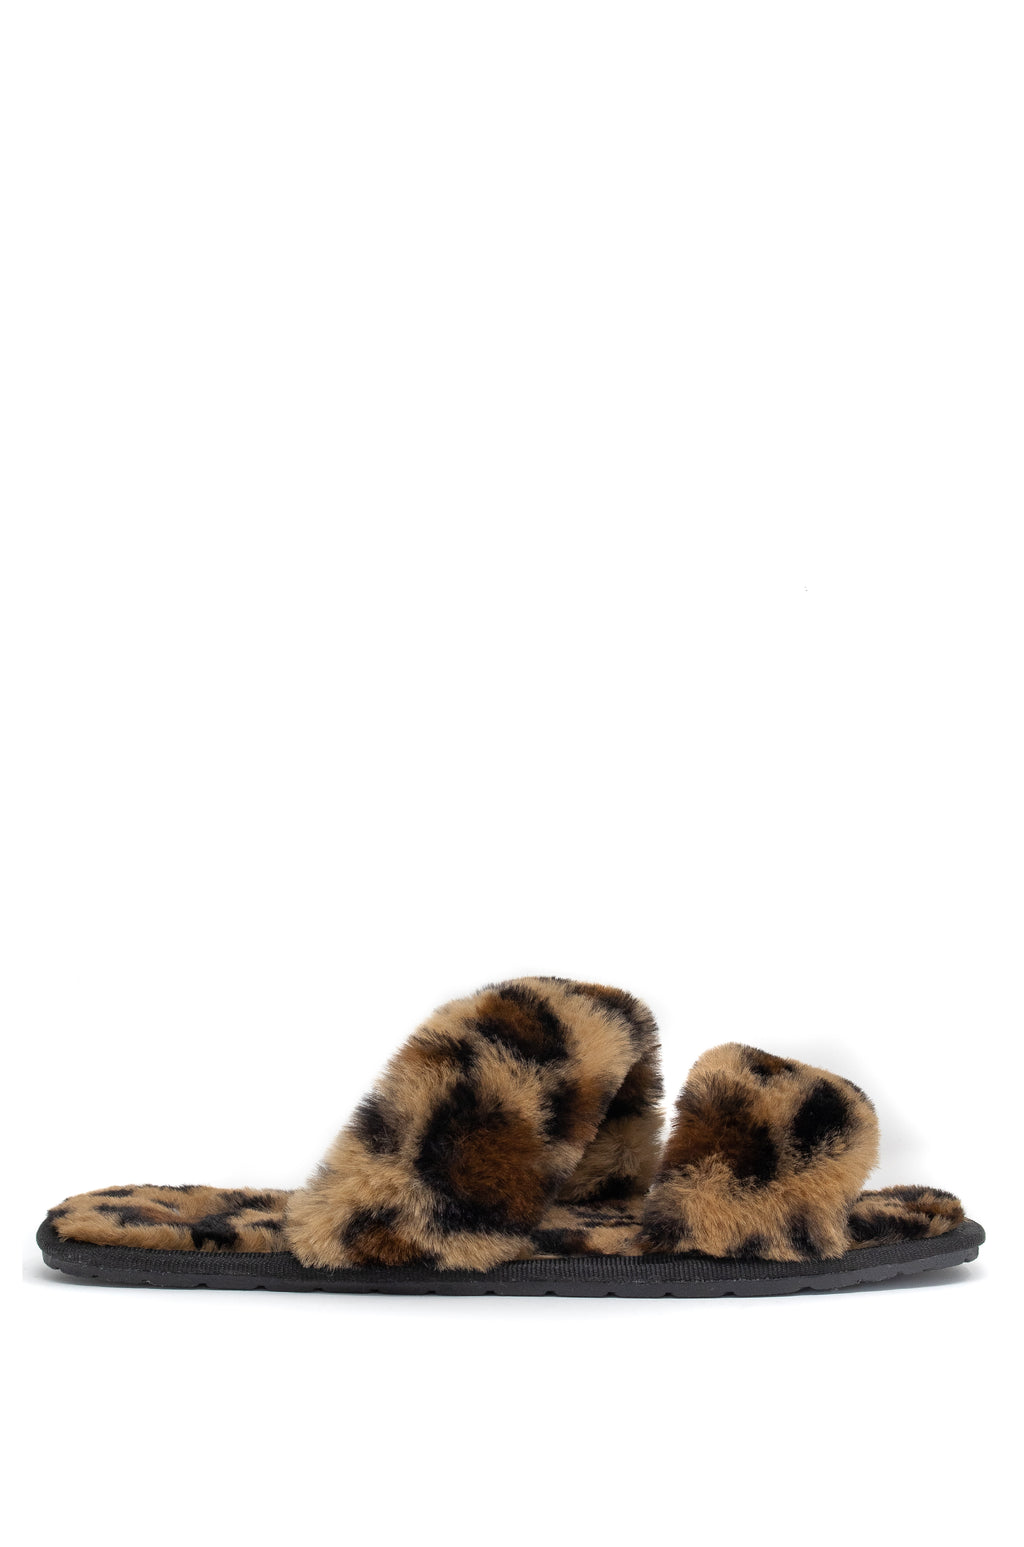 Chill Out - Leopard Sandals